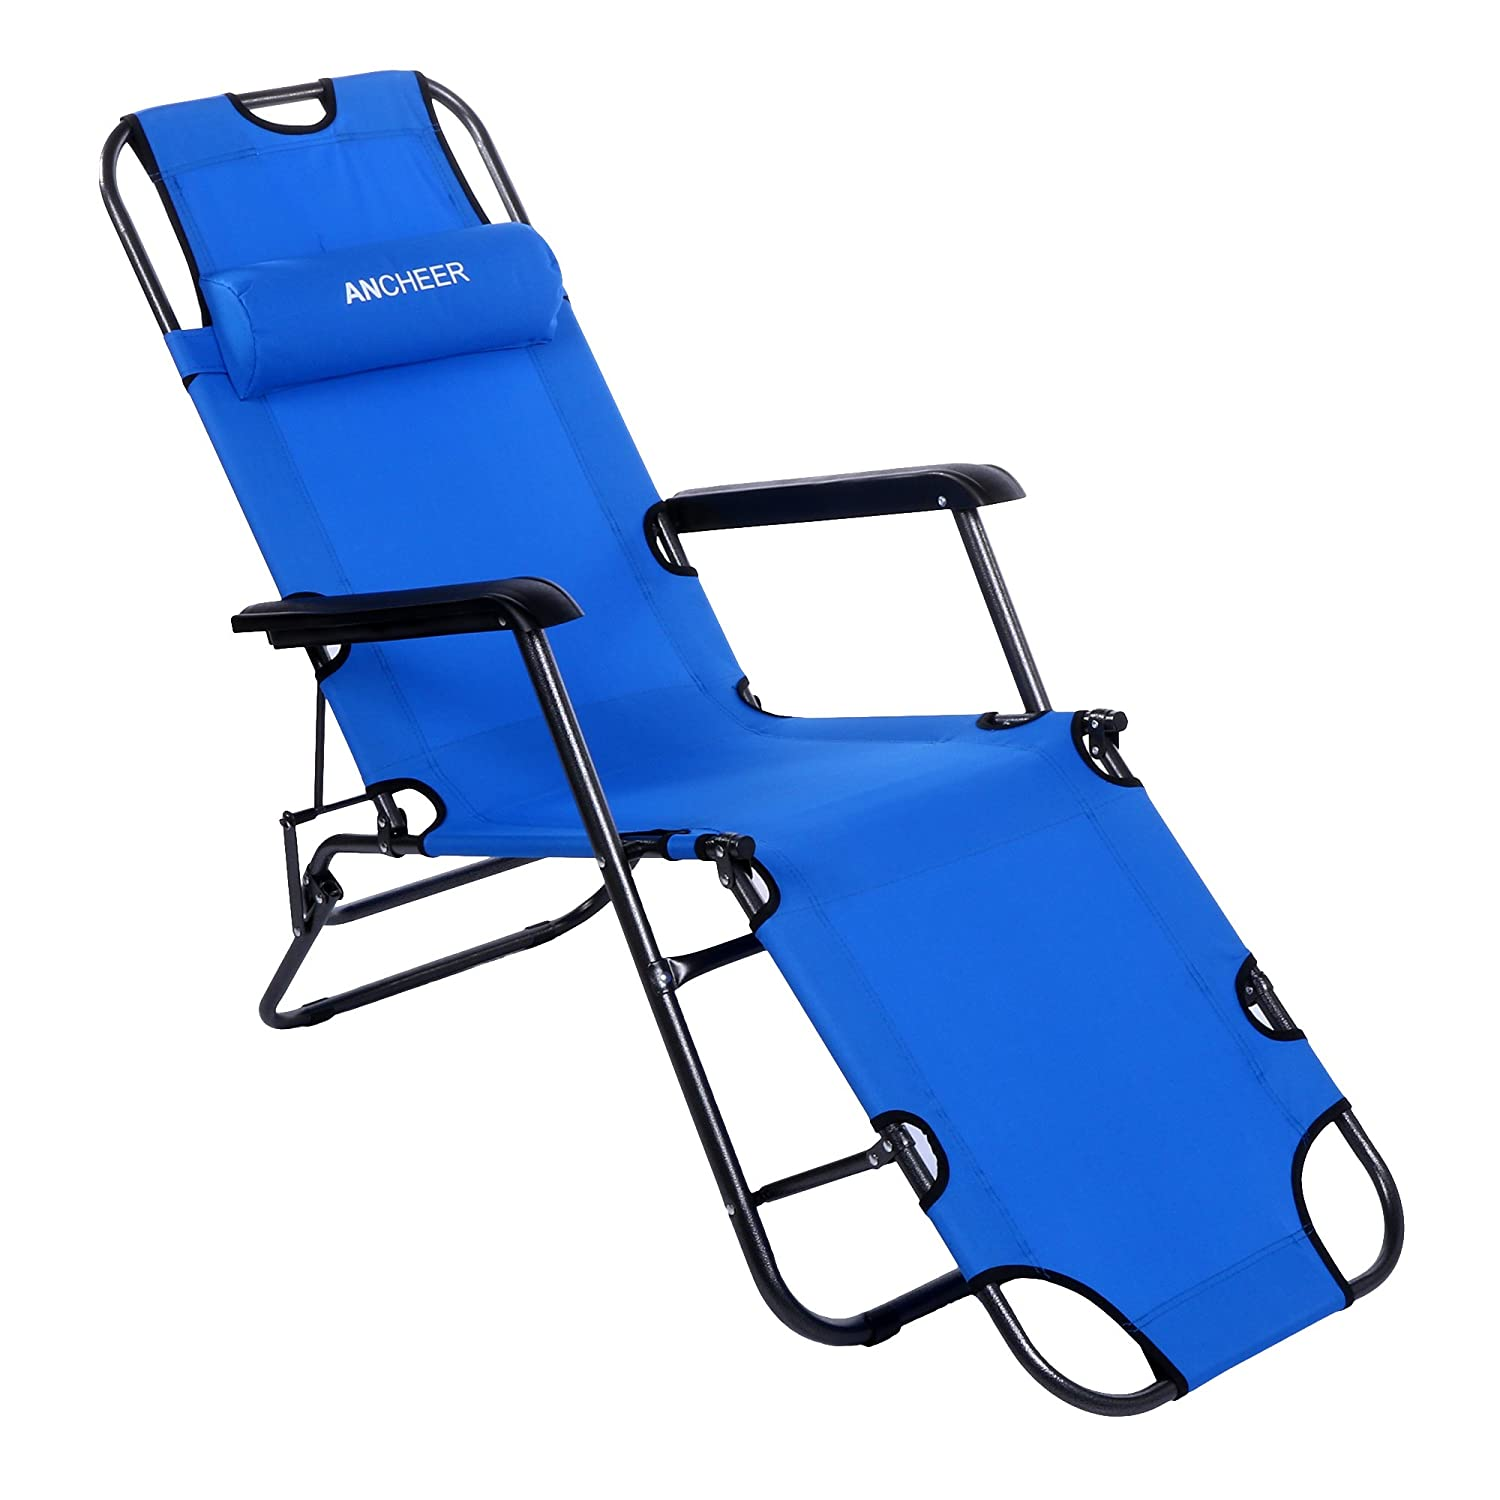 Beach lounge chair portable - Amazon Com Ancheer Chaise Lounge Folding Lounge Chair Beach Chaise Portable Cot With Adjustable Pillow Sports Outdoors